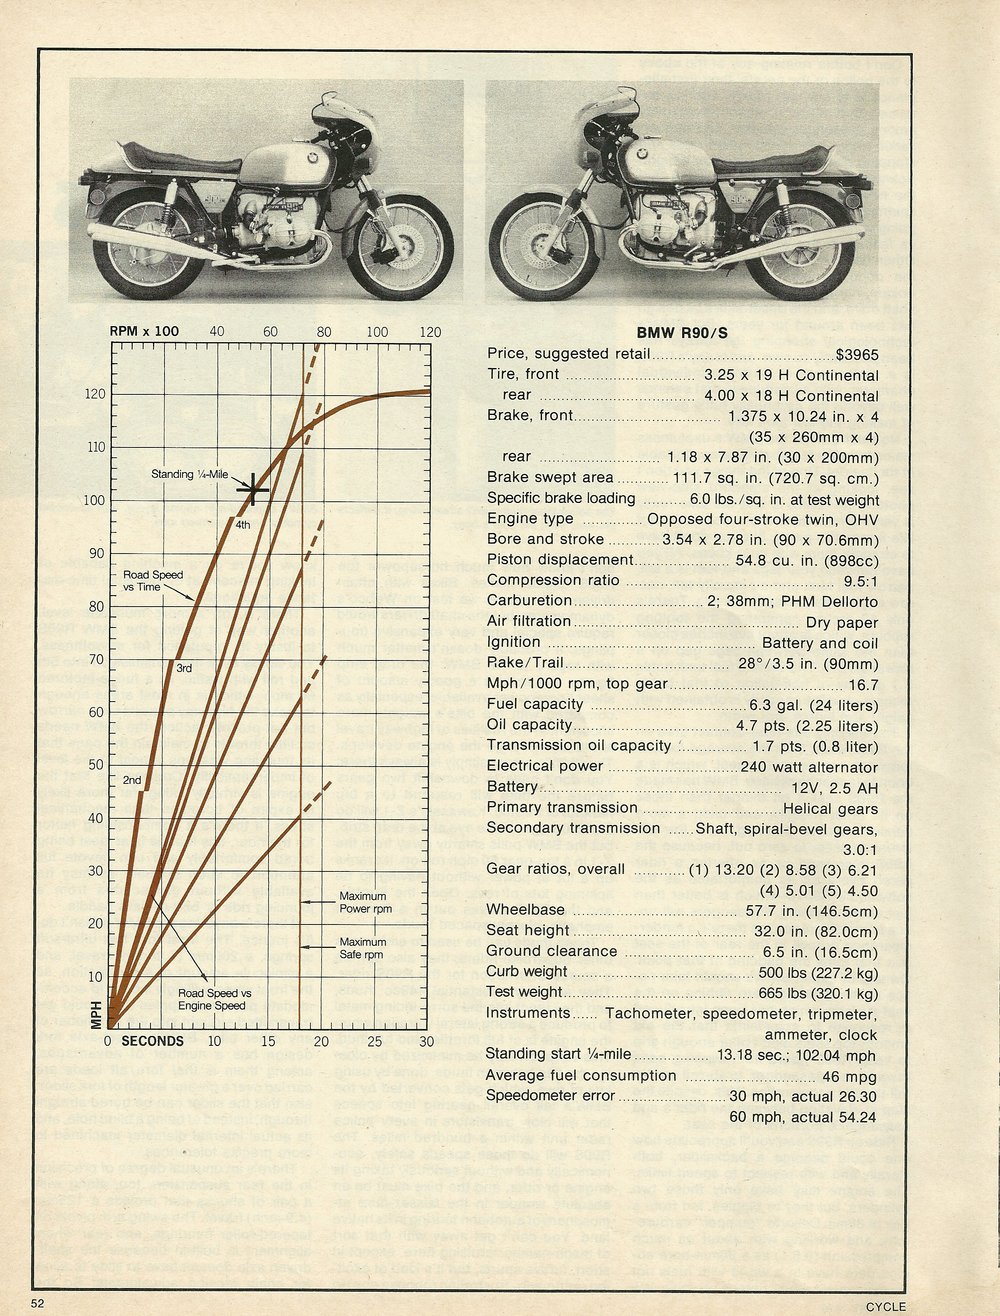 1976 BMW R90S road test 5.JPG